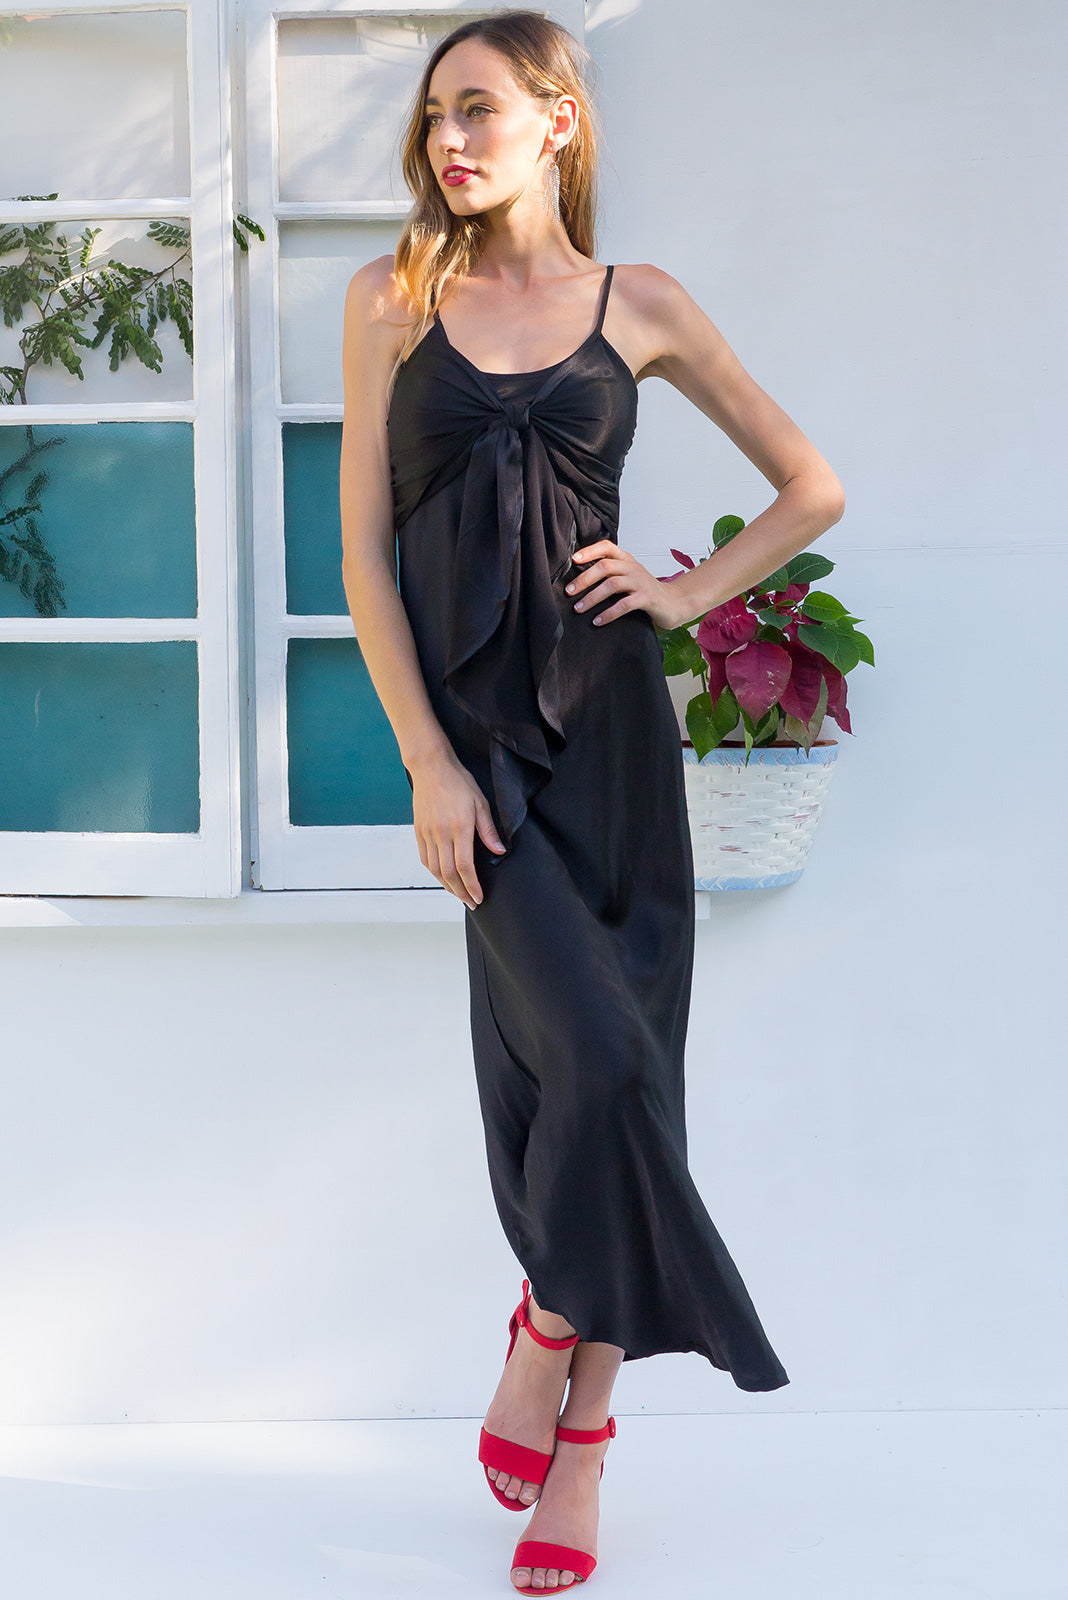 Venus bias cut satin crepe maxi dress with a front tie and adjustable straps in black